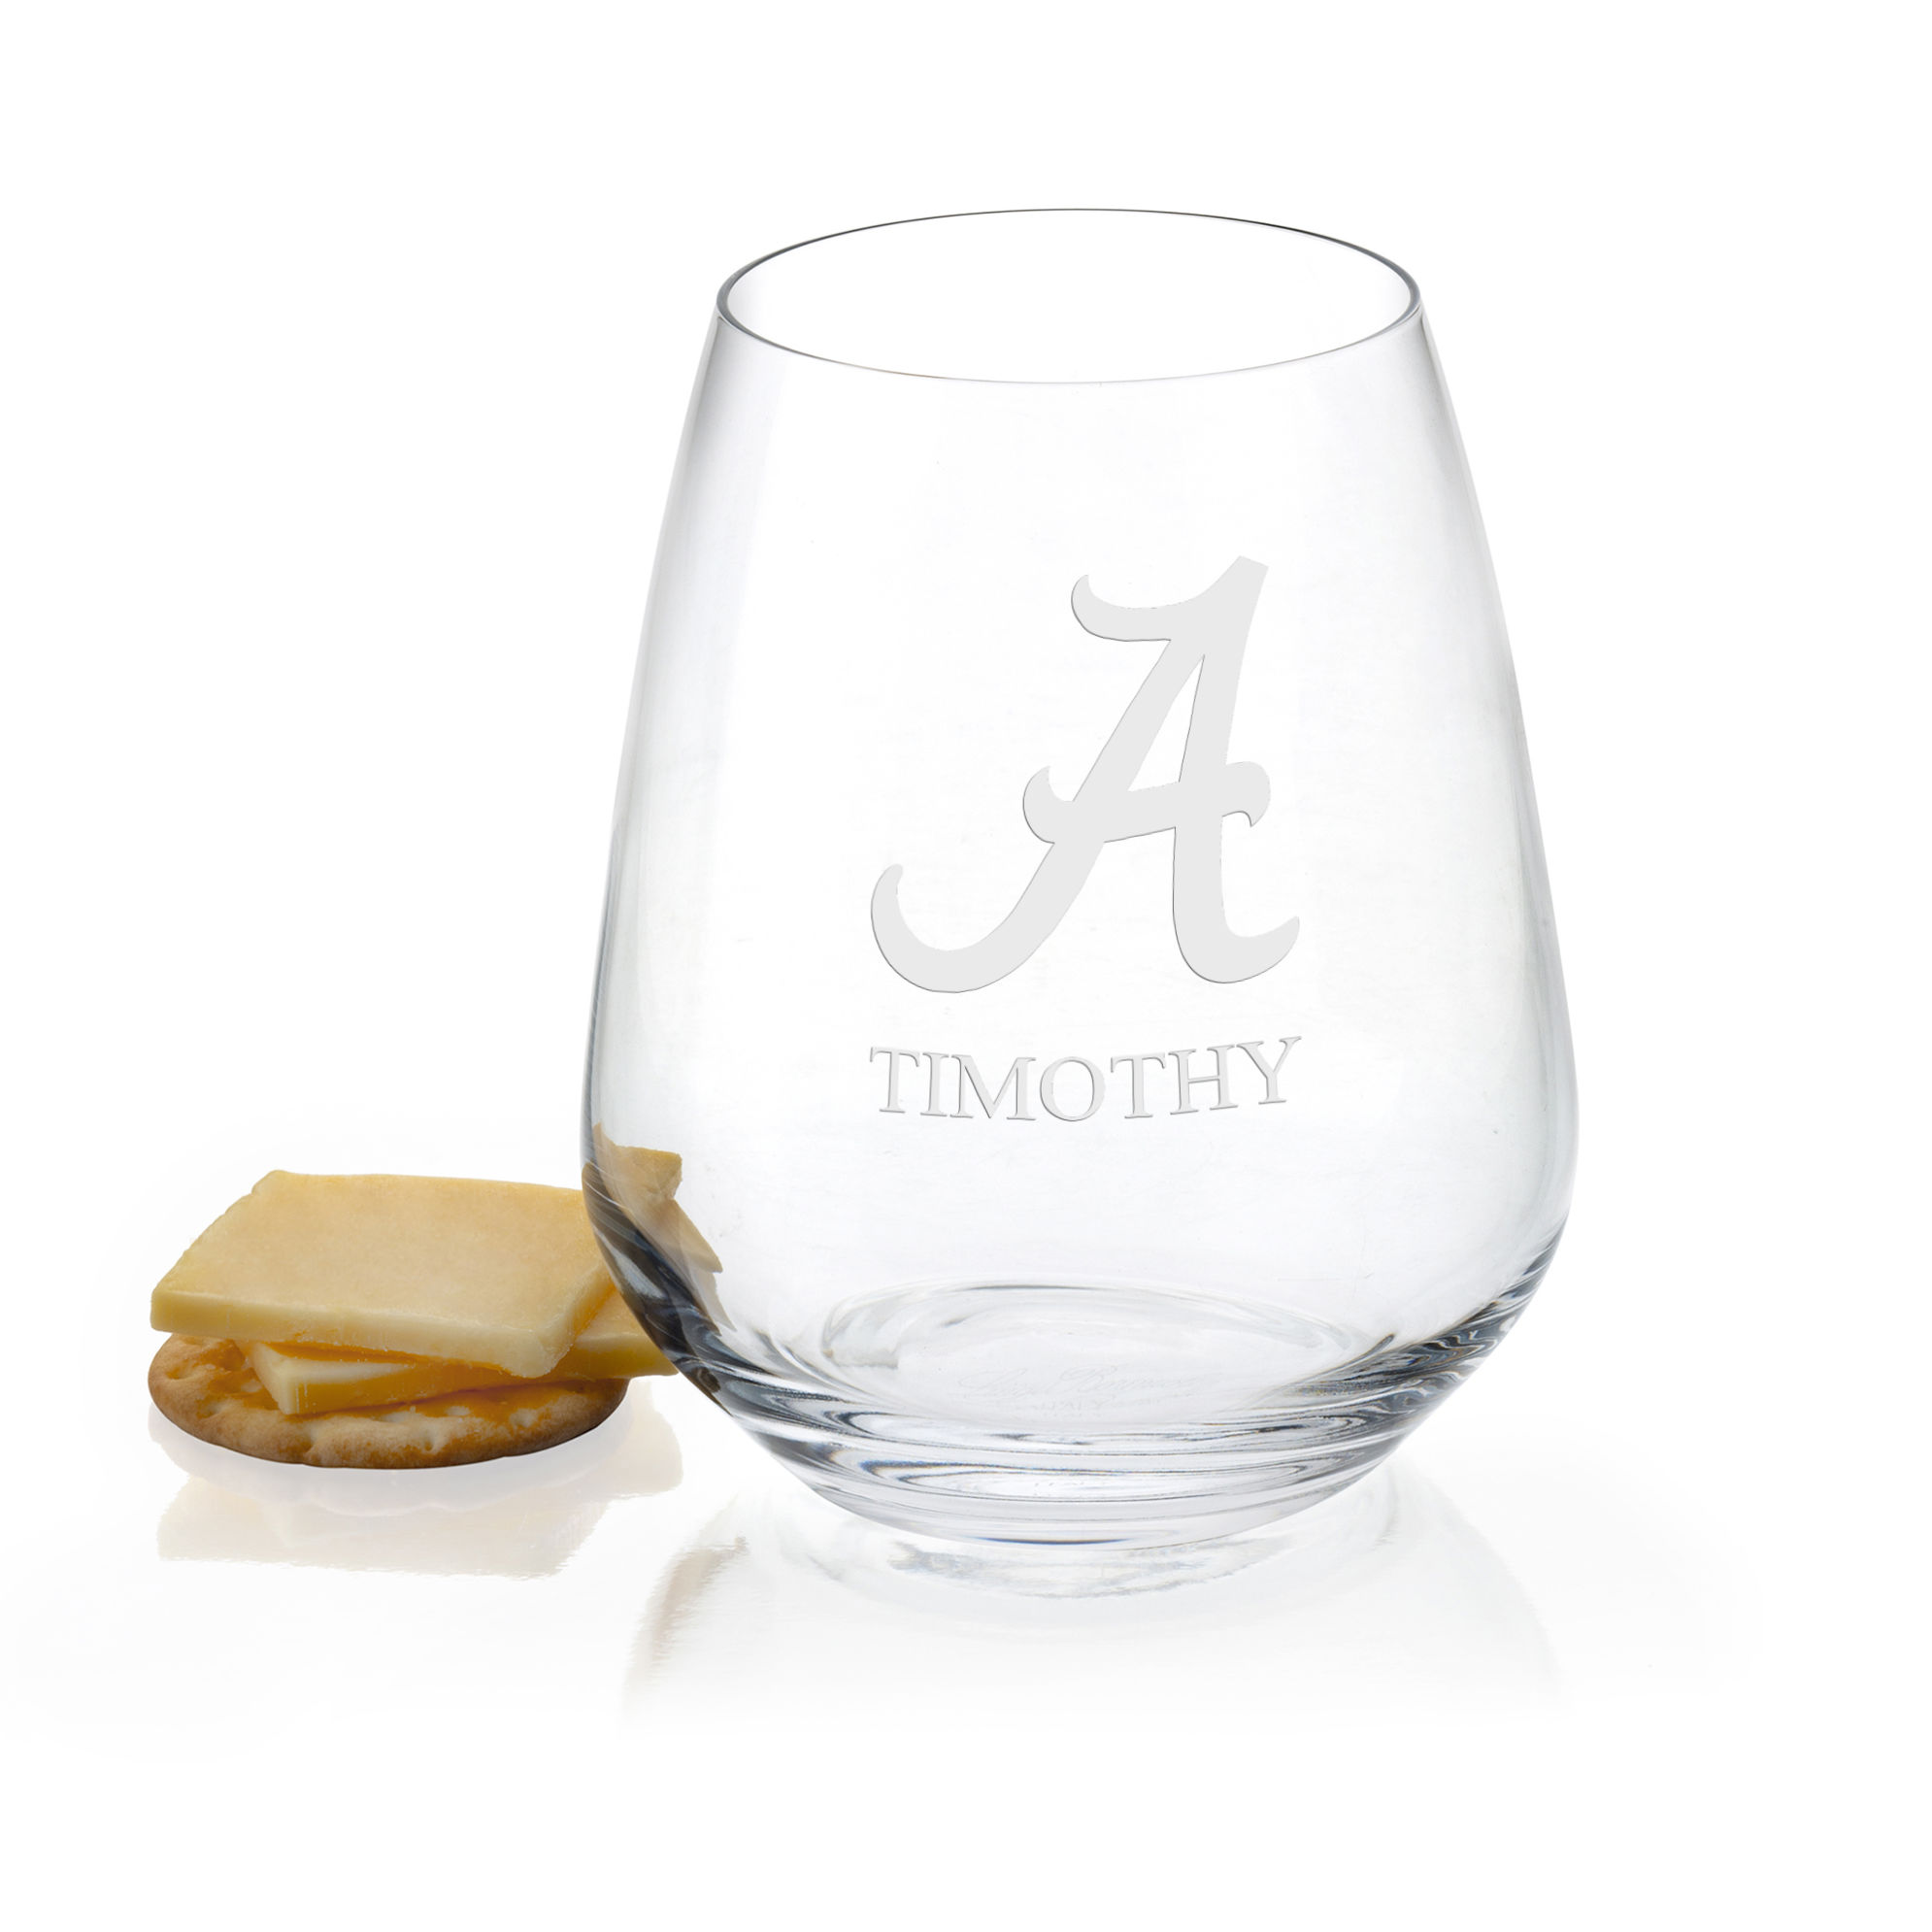 University of Alabama Stemless Wine Glasses - Set of 2 - Image 1